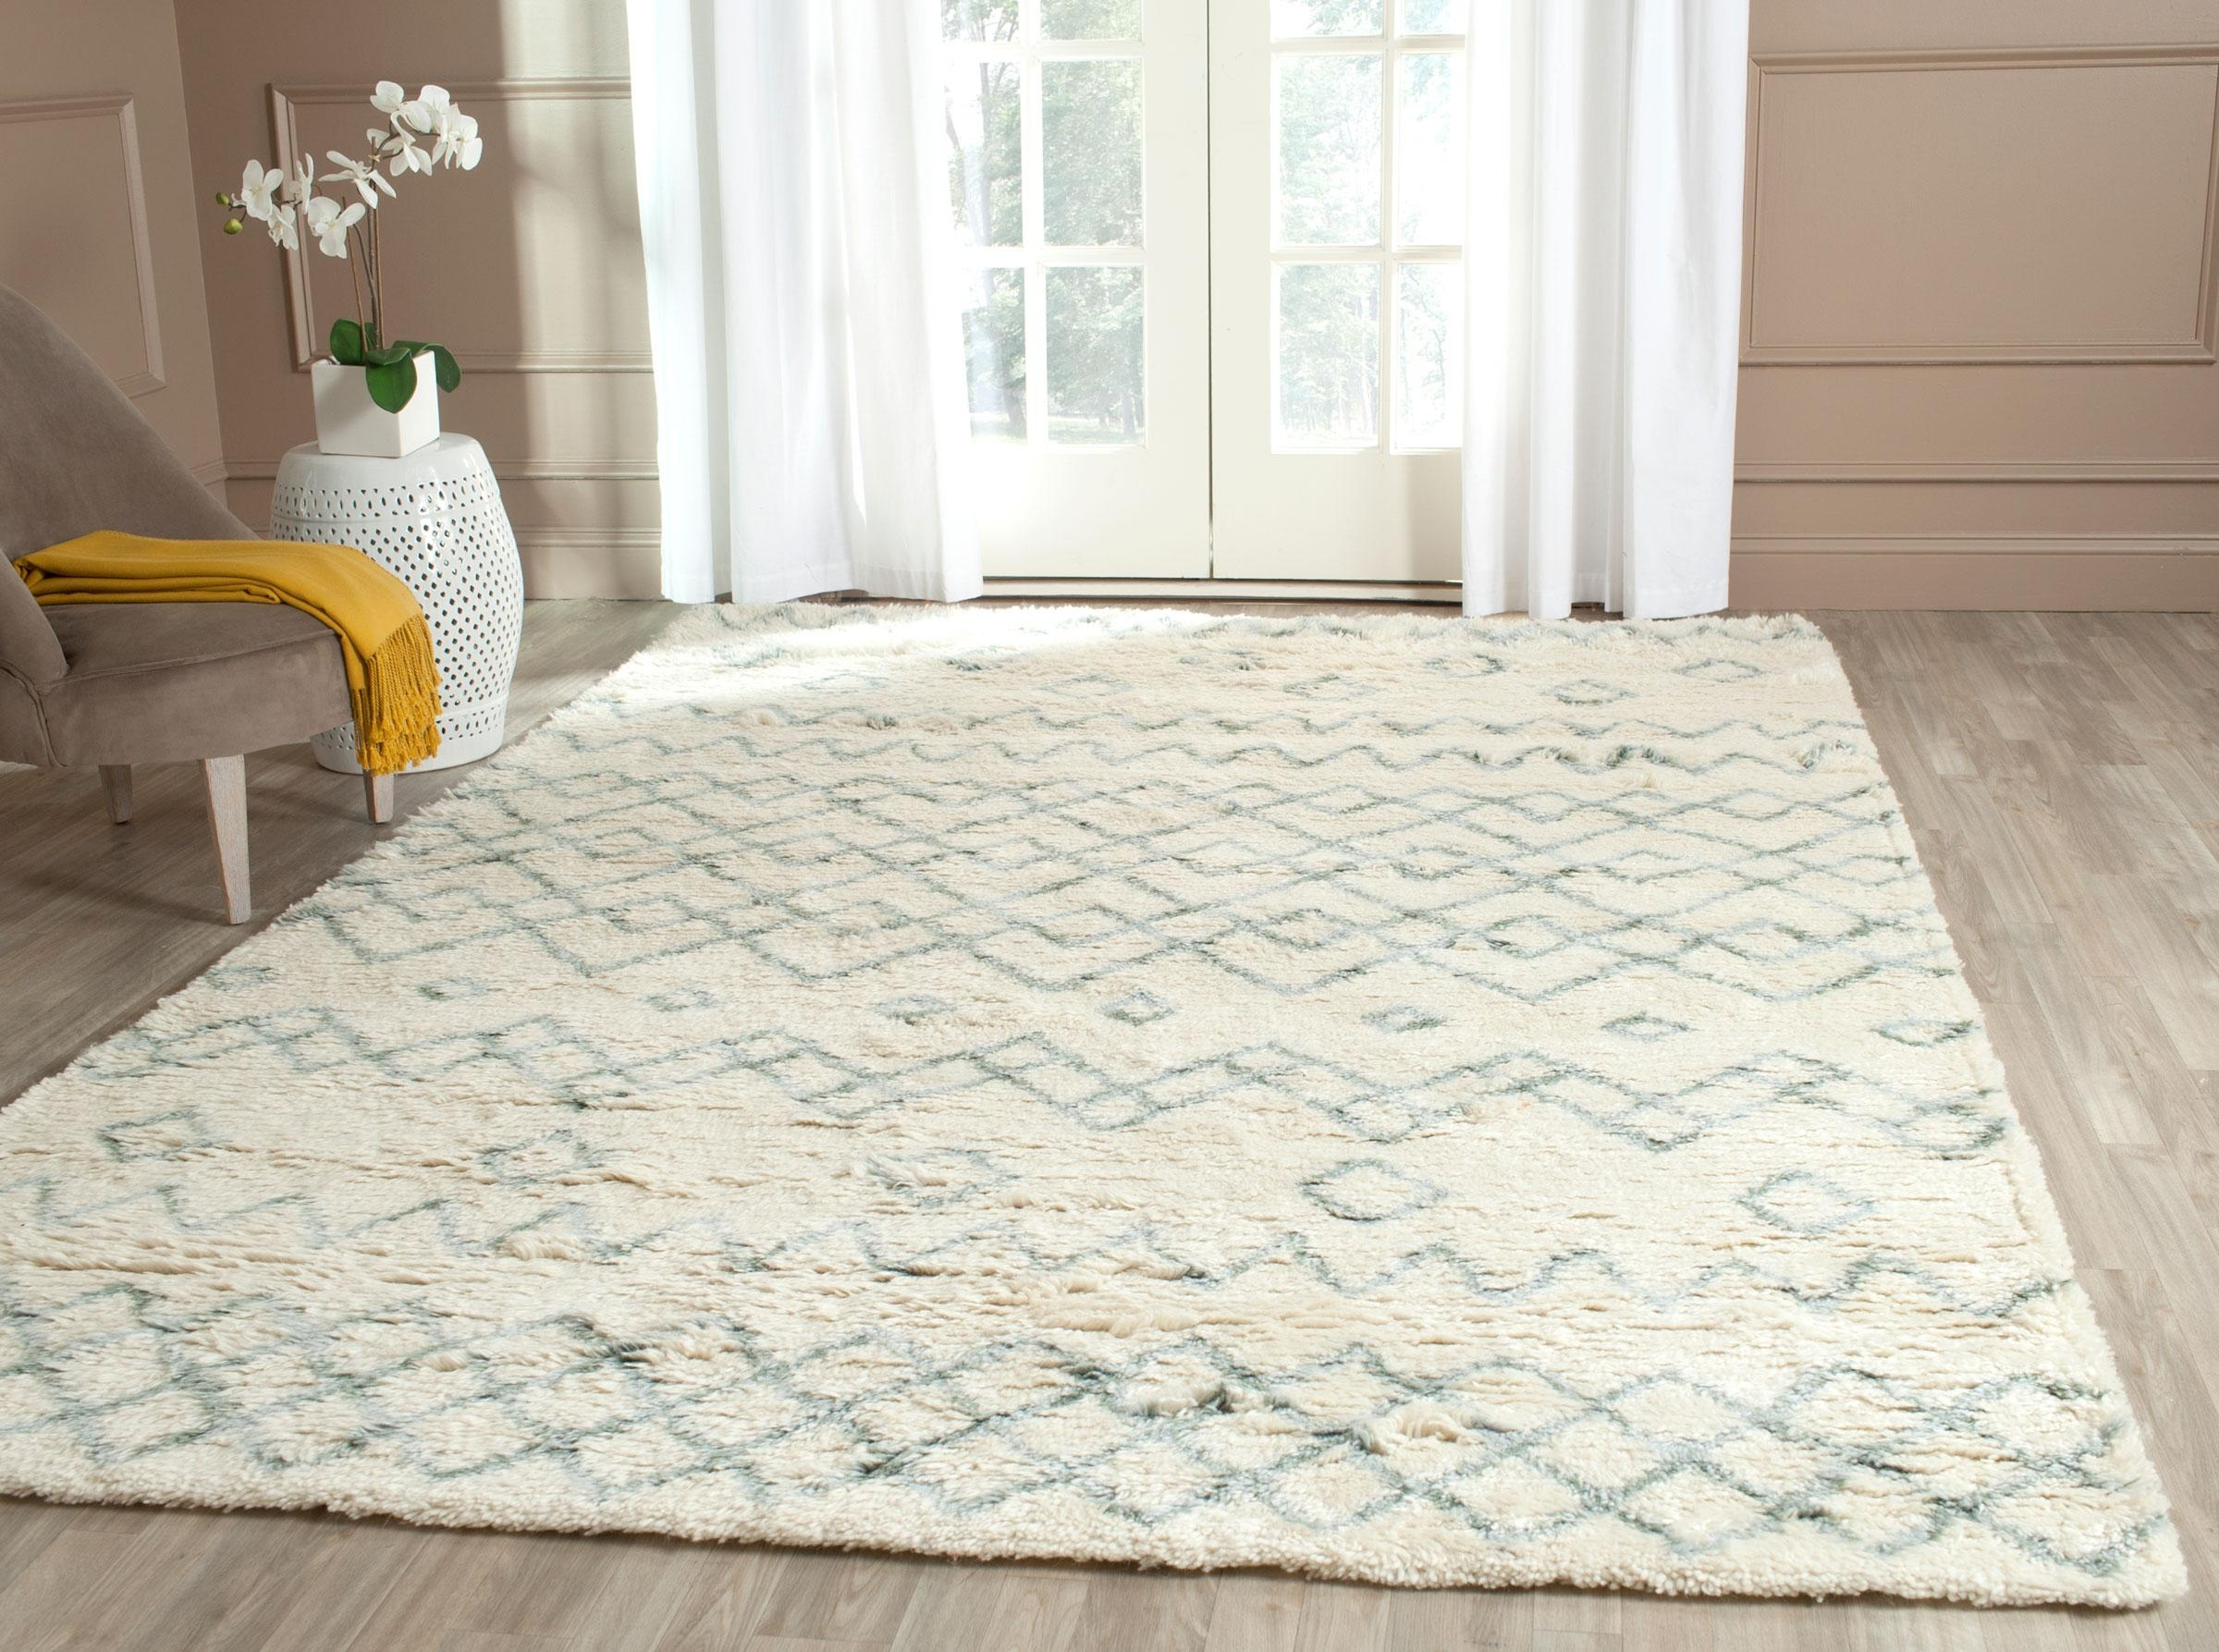 15 Best Collection Of New Zealand Wool Area Rugs